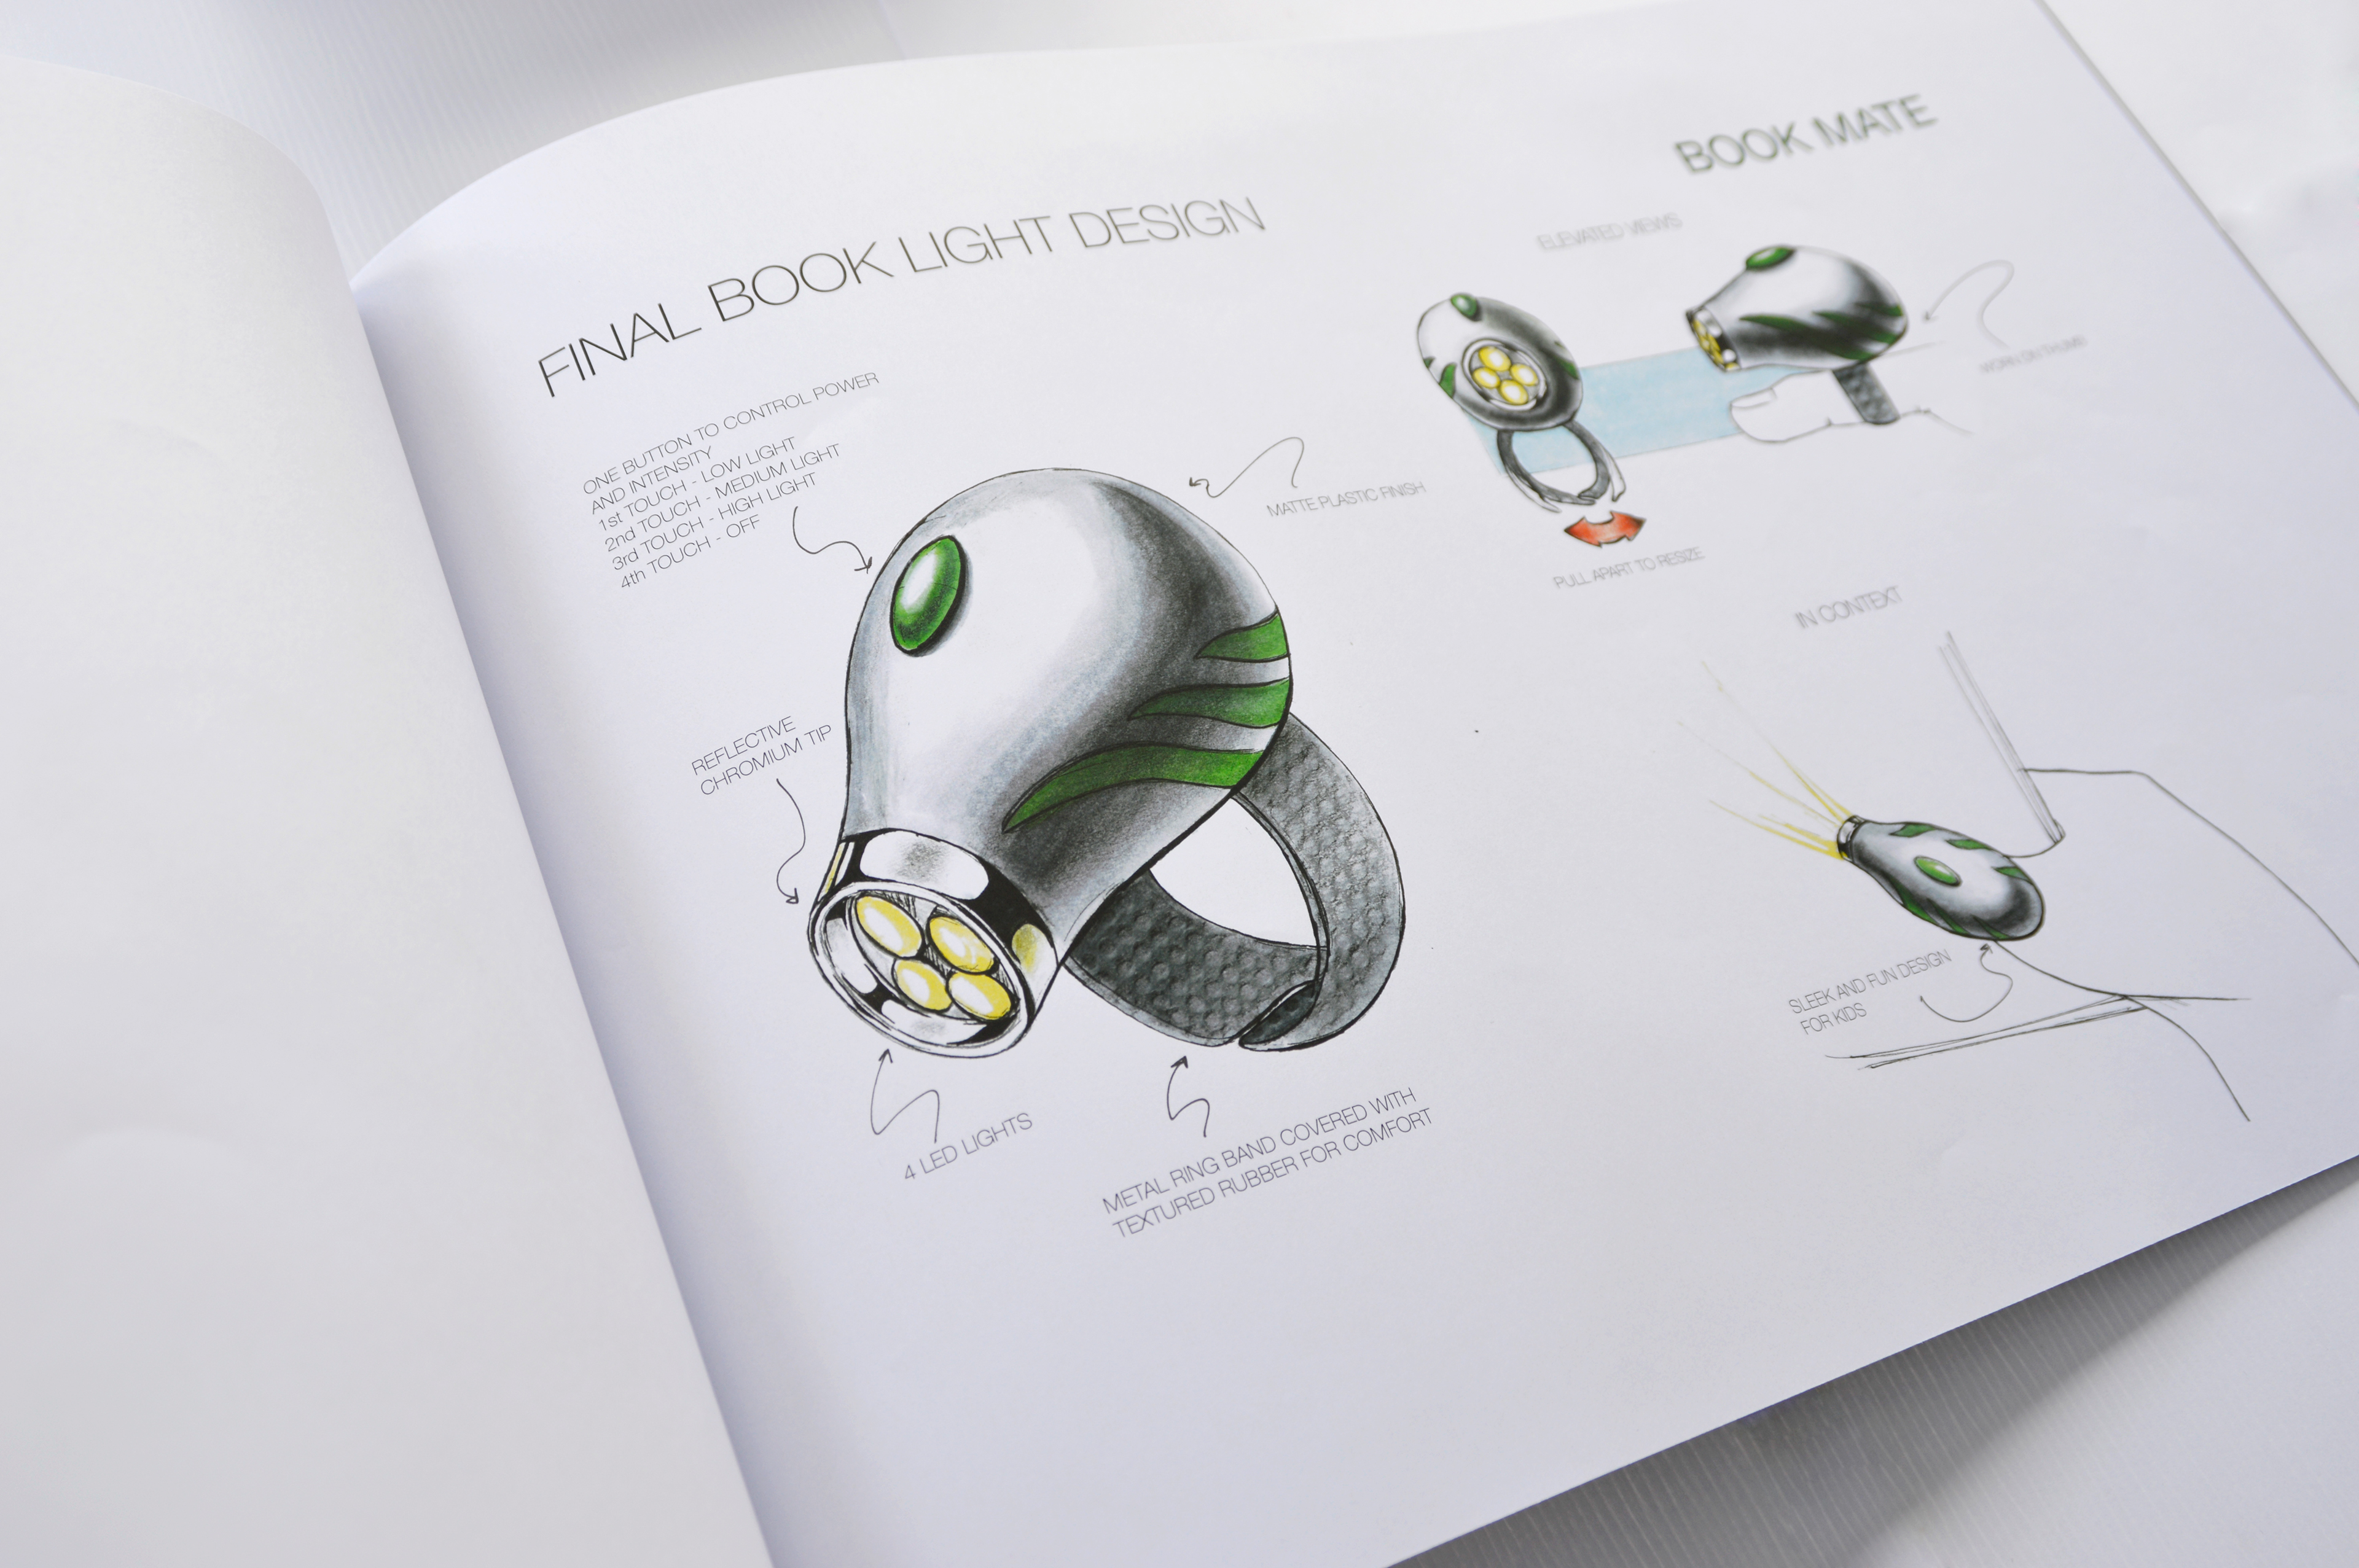 booklight design biomimicry on behance